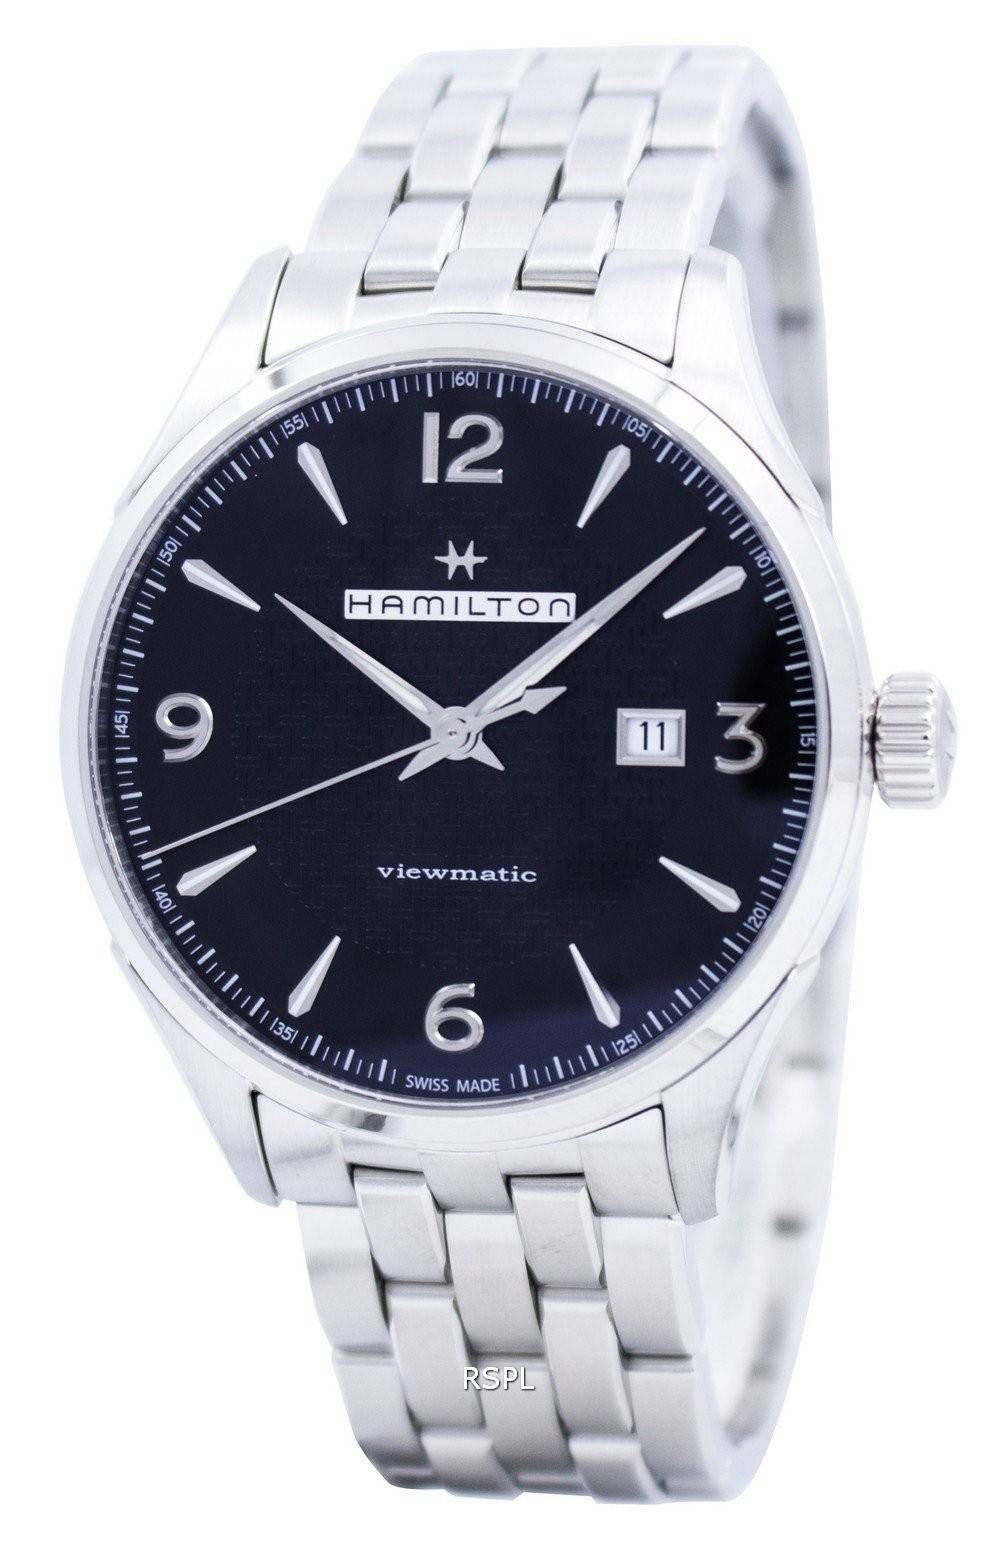 hamilton jazzmaster viewmatic automatic swiss made